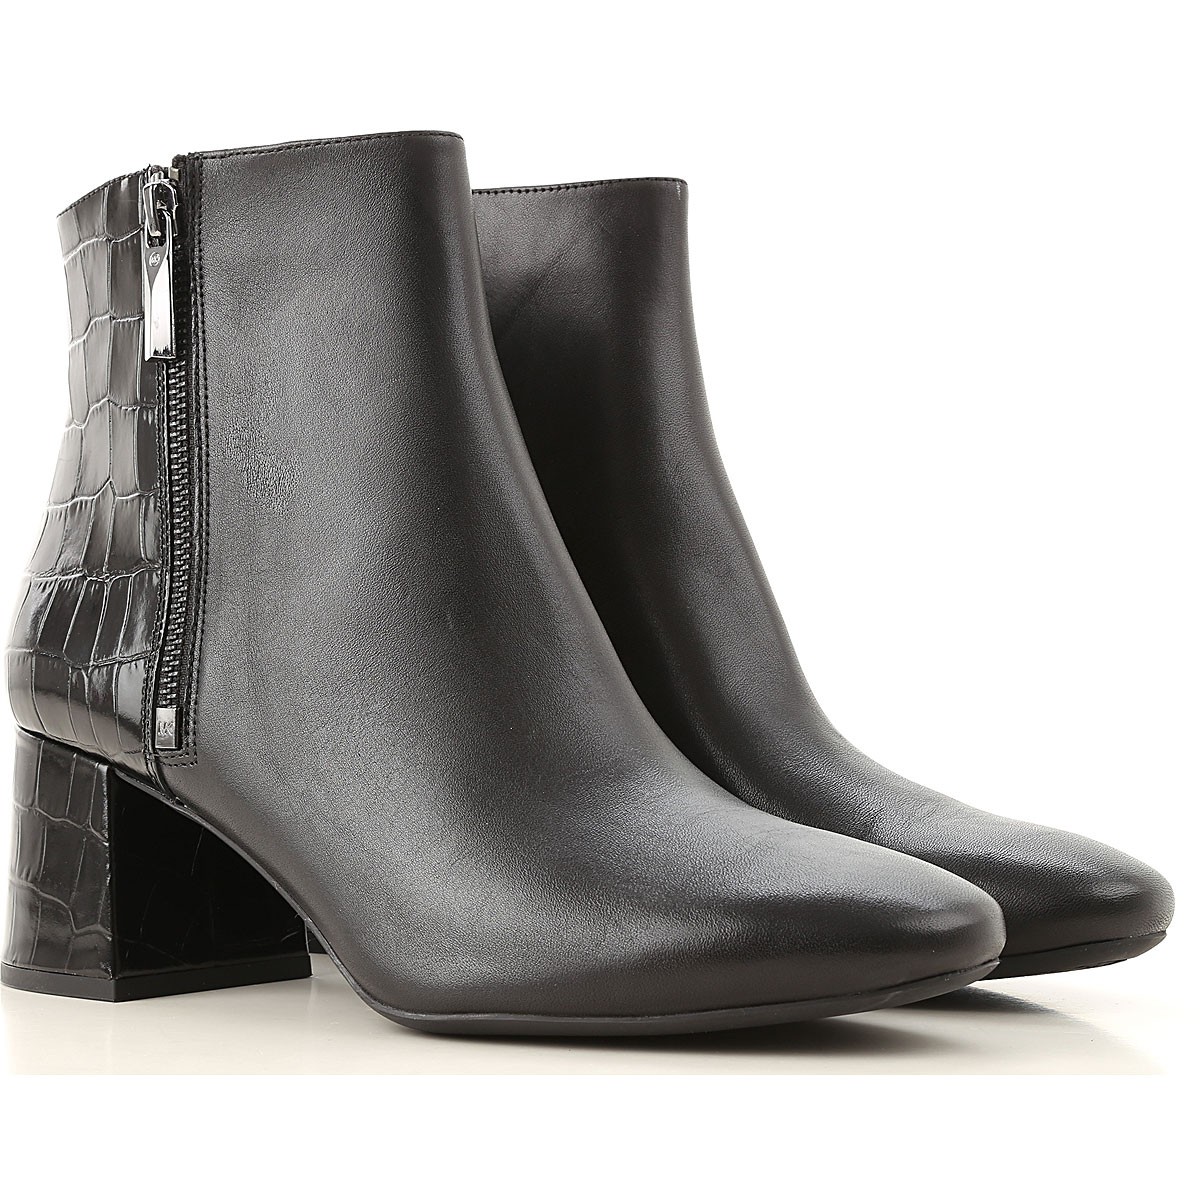 Michael Kors Boots for Women, Booties On Sale, Black, Leather, 2019, 10 5 6 6.5 7 8 9 9.5